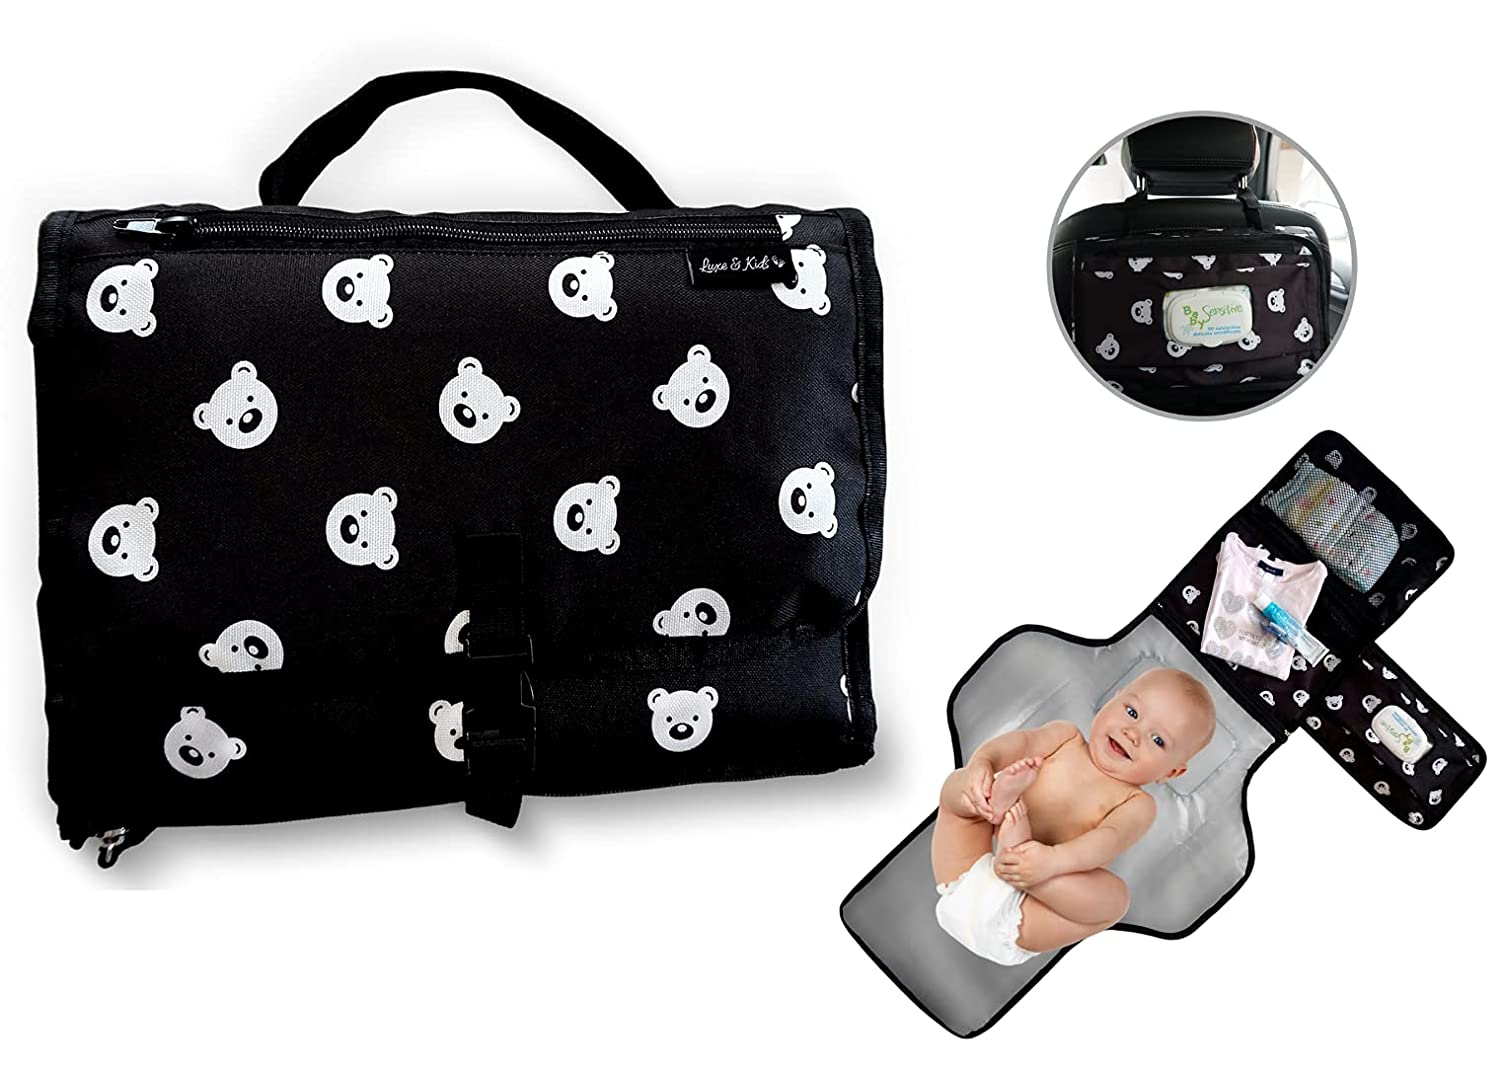 Portable Baby Changing Pad Luxe and Kids - Portable Travel Changing Pad for Baby Diaper Bag and Changing Table Pad - Baby Shower Gifts and Newborn Essentials Unisex Boy and Girl Teddy Bear Design